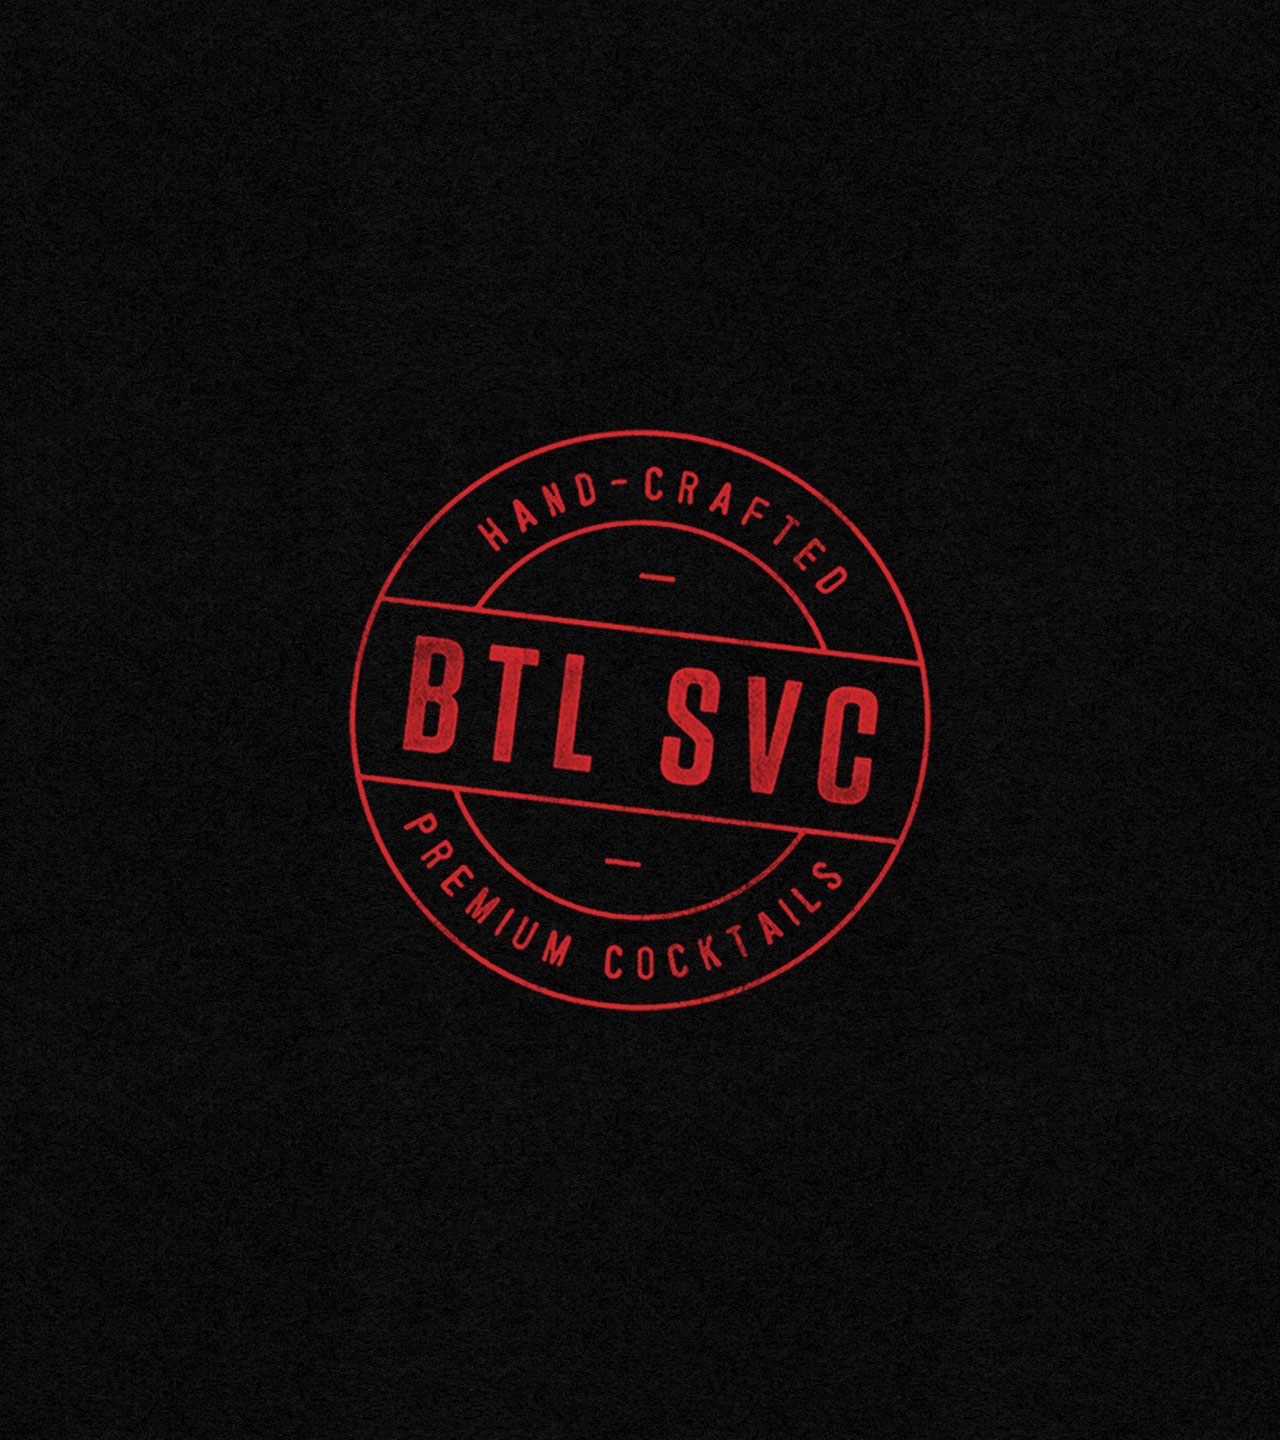 BTL SVC Bottle Service Packaging Design by Colony